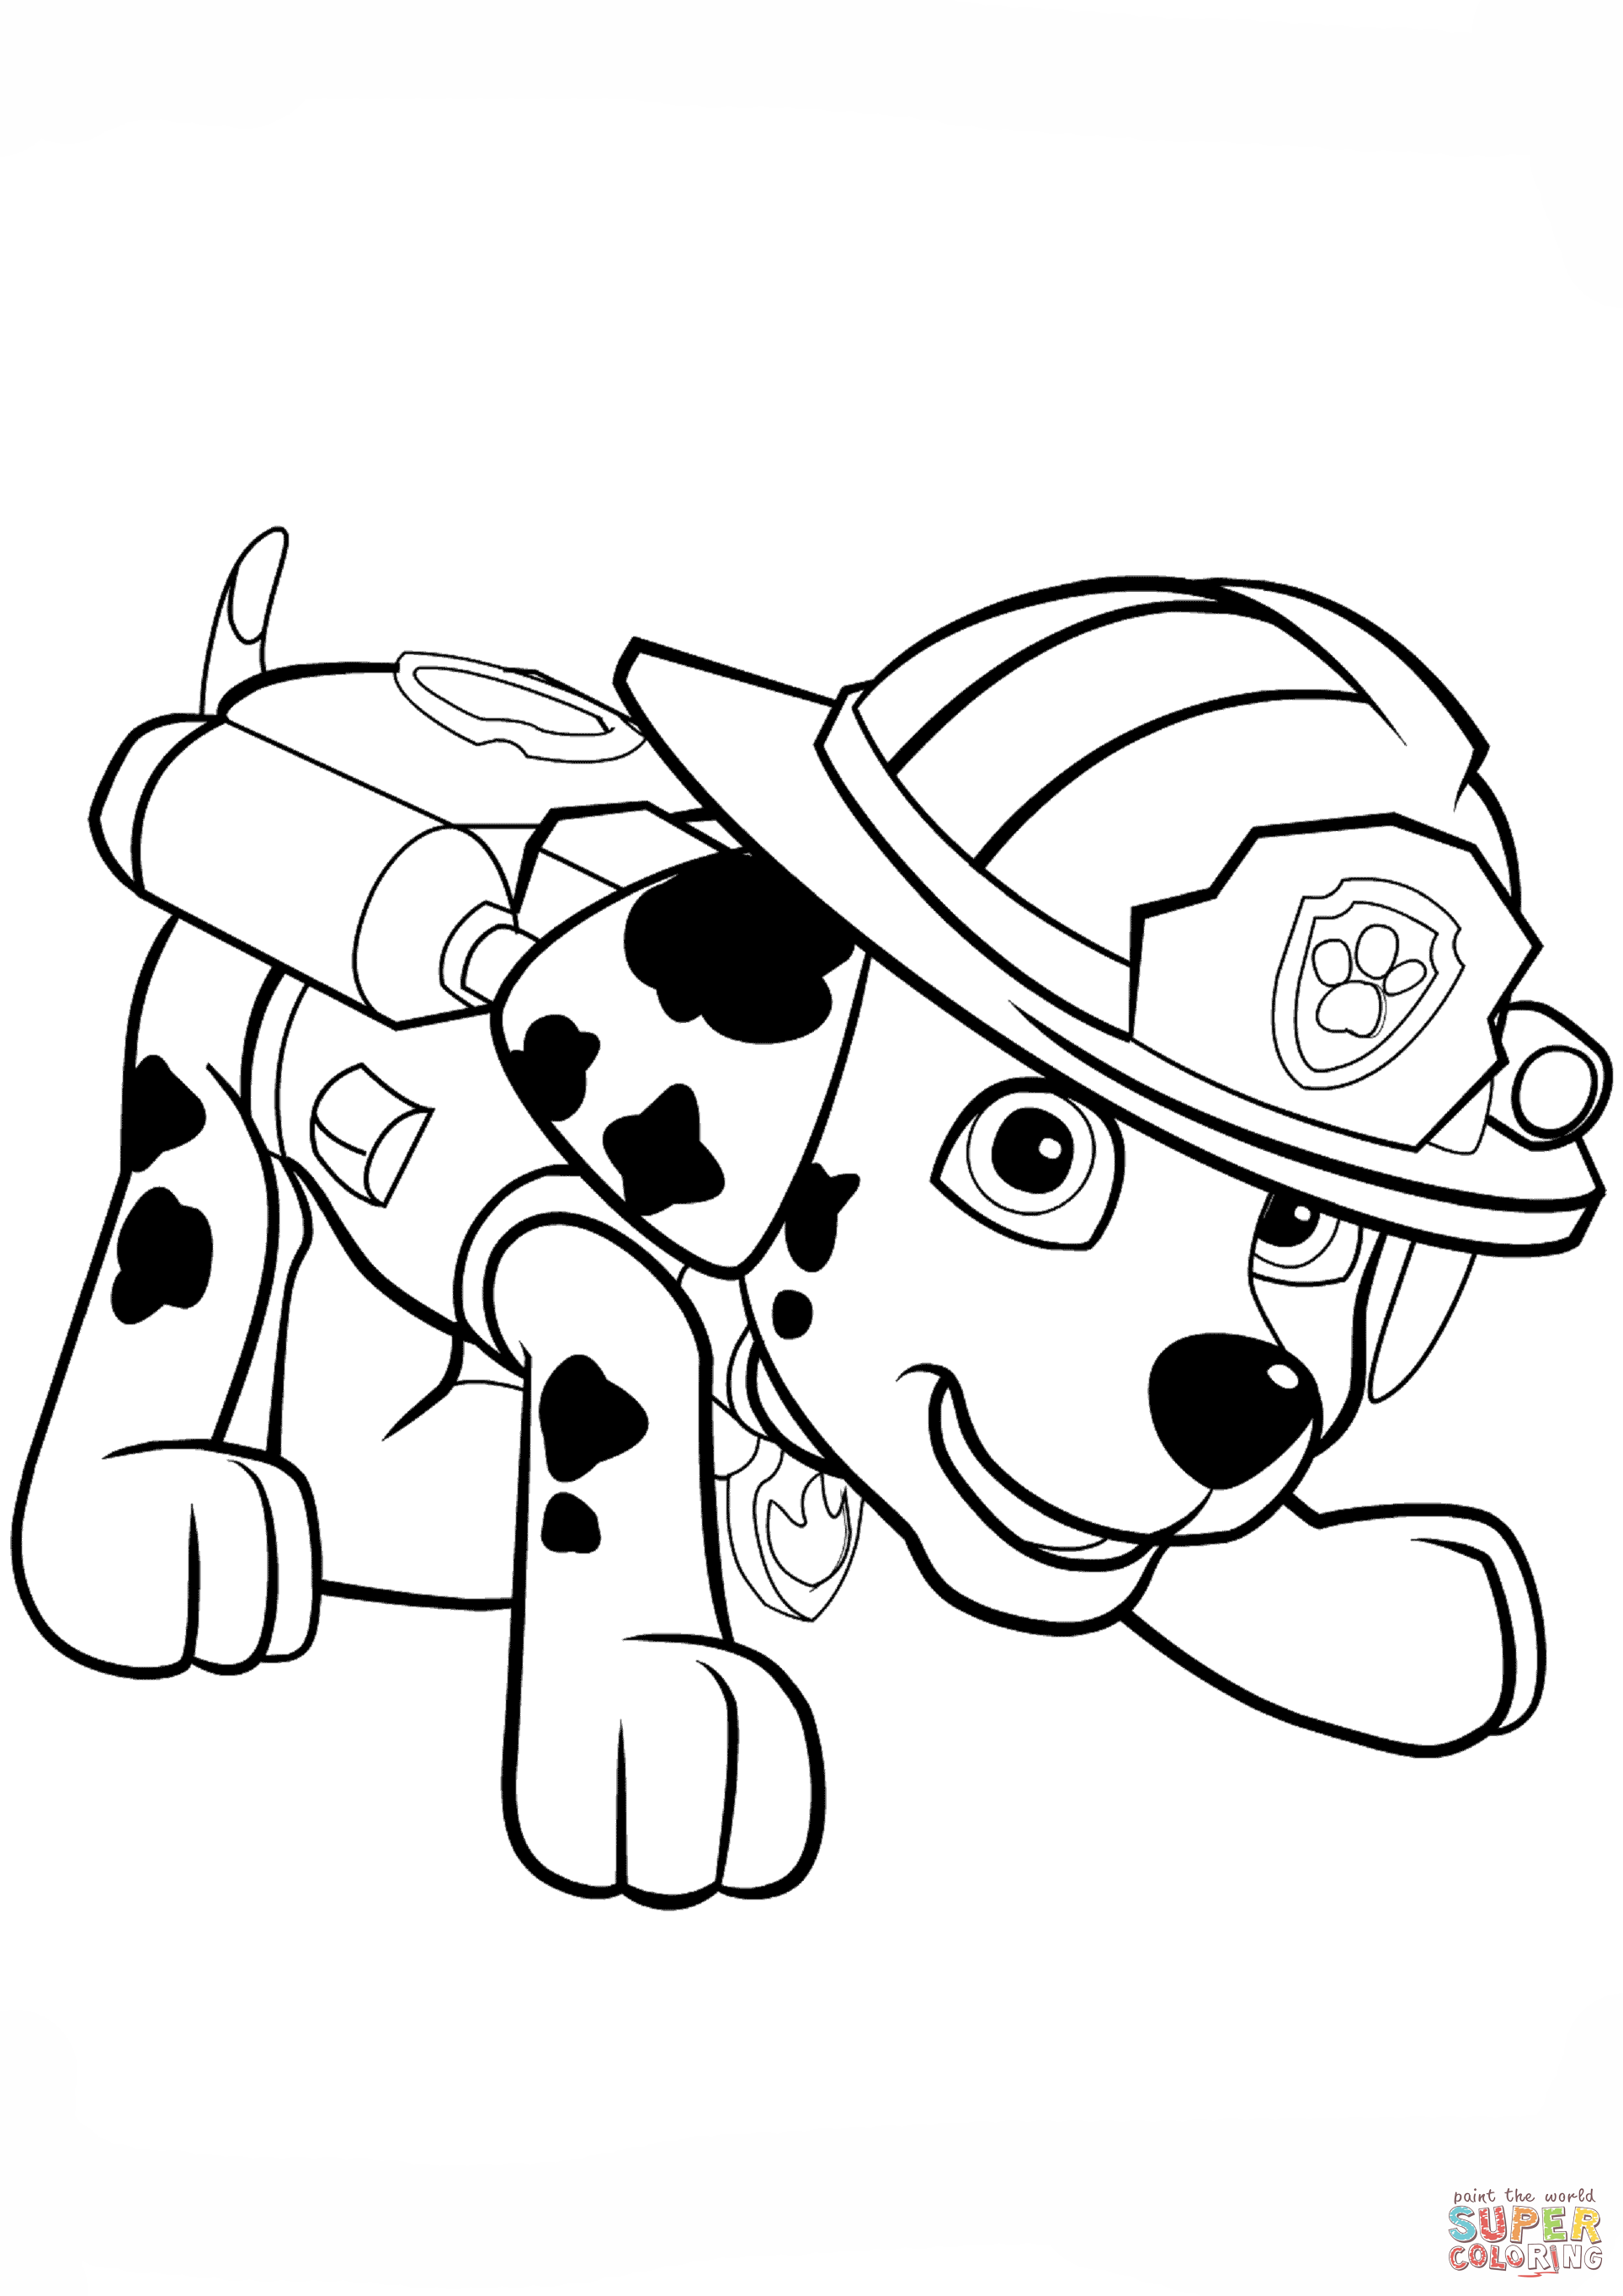 Paw Patrol Marshall Puppy Coloring Page Free Printable Coloring